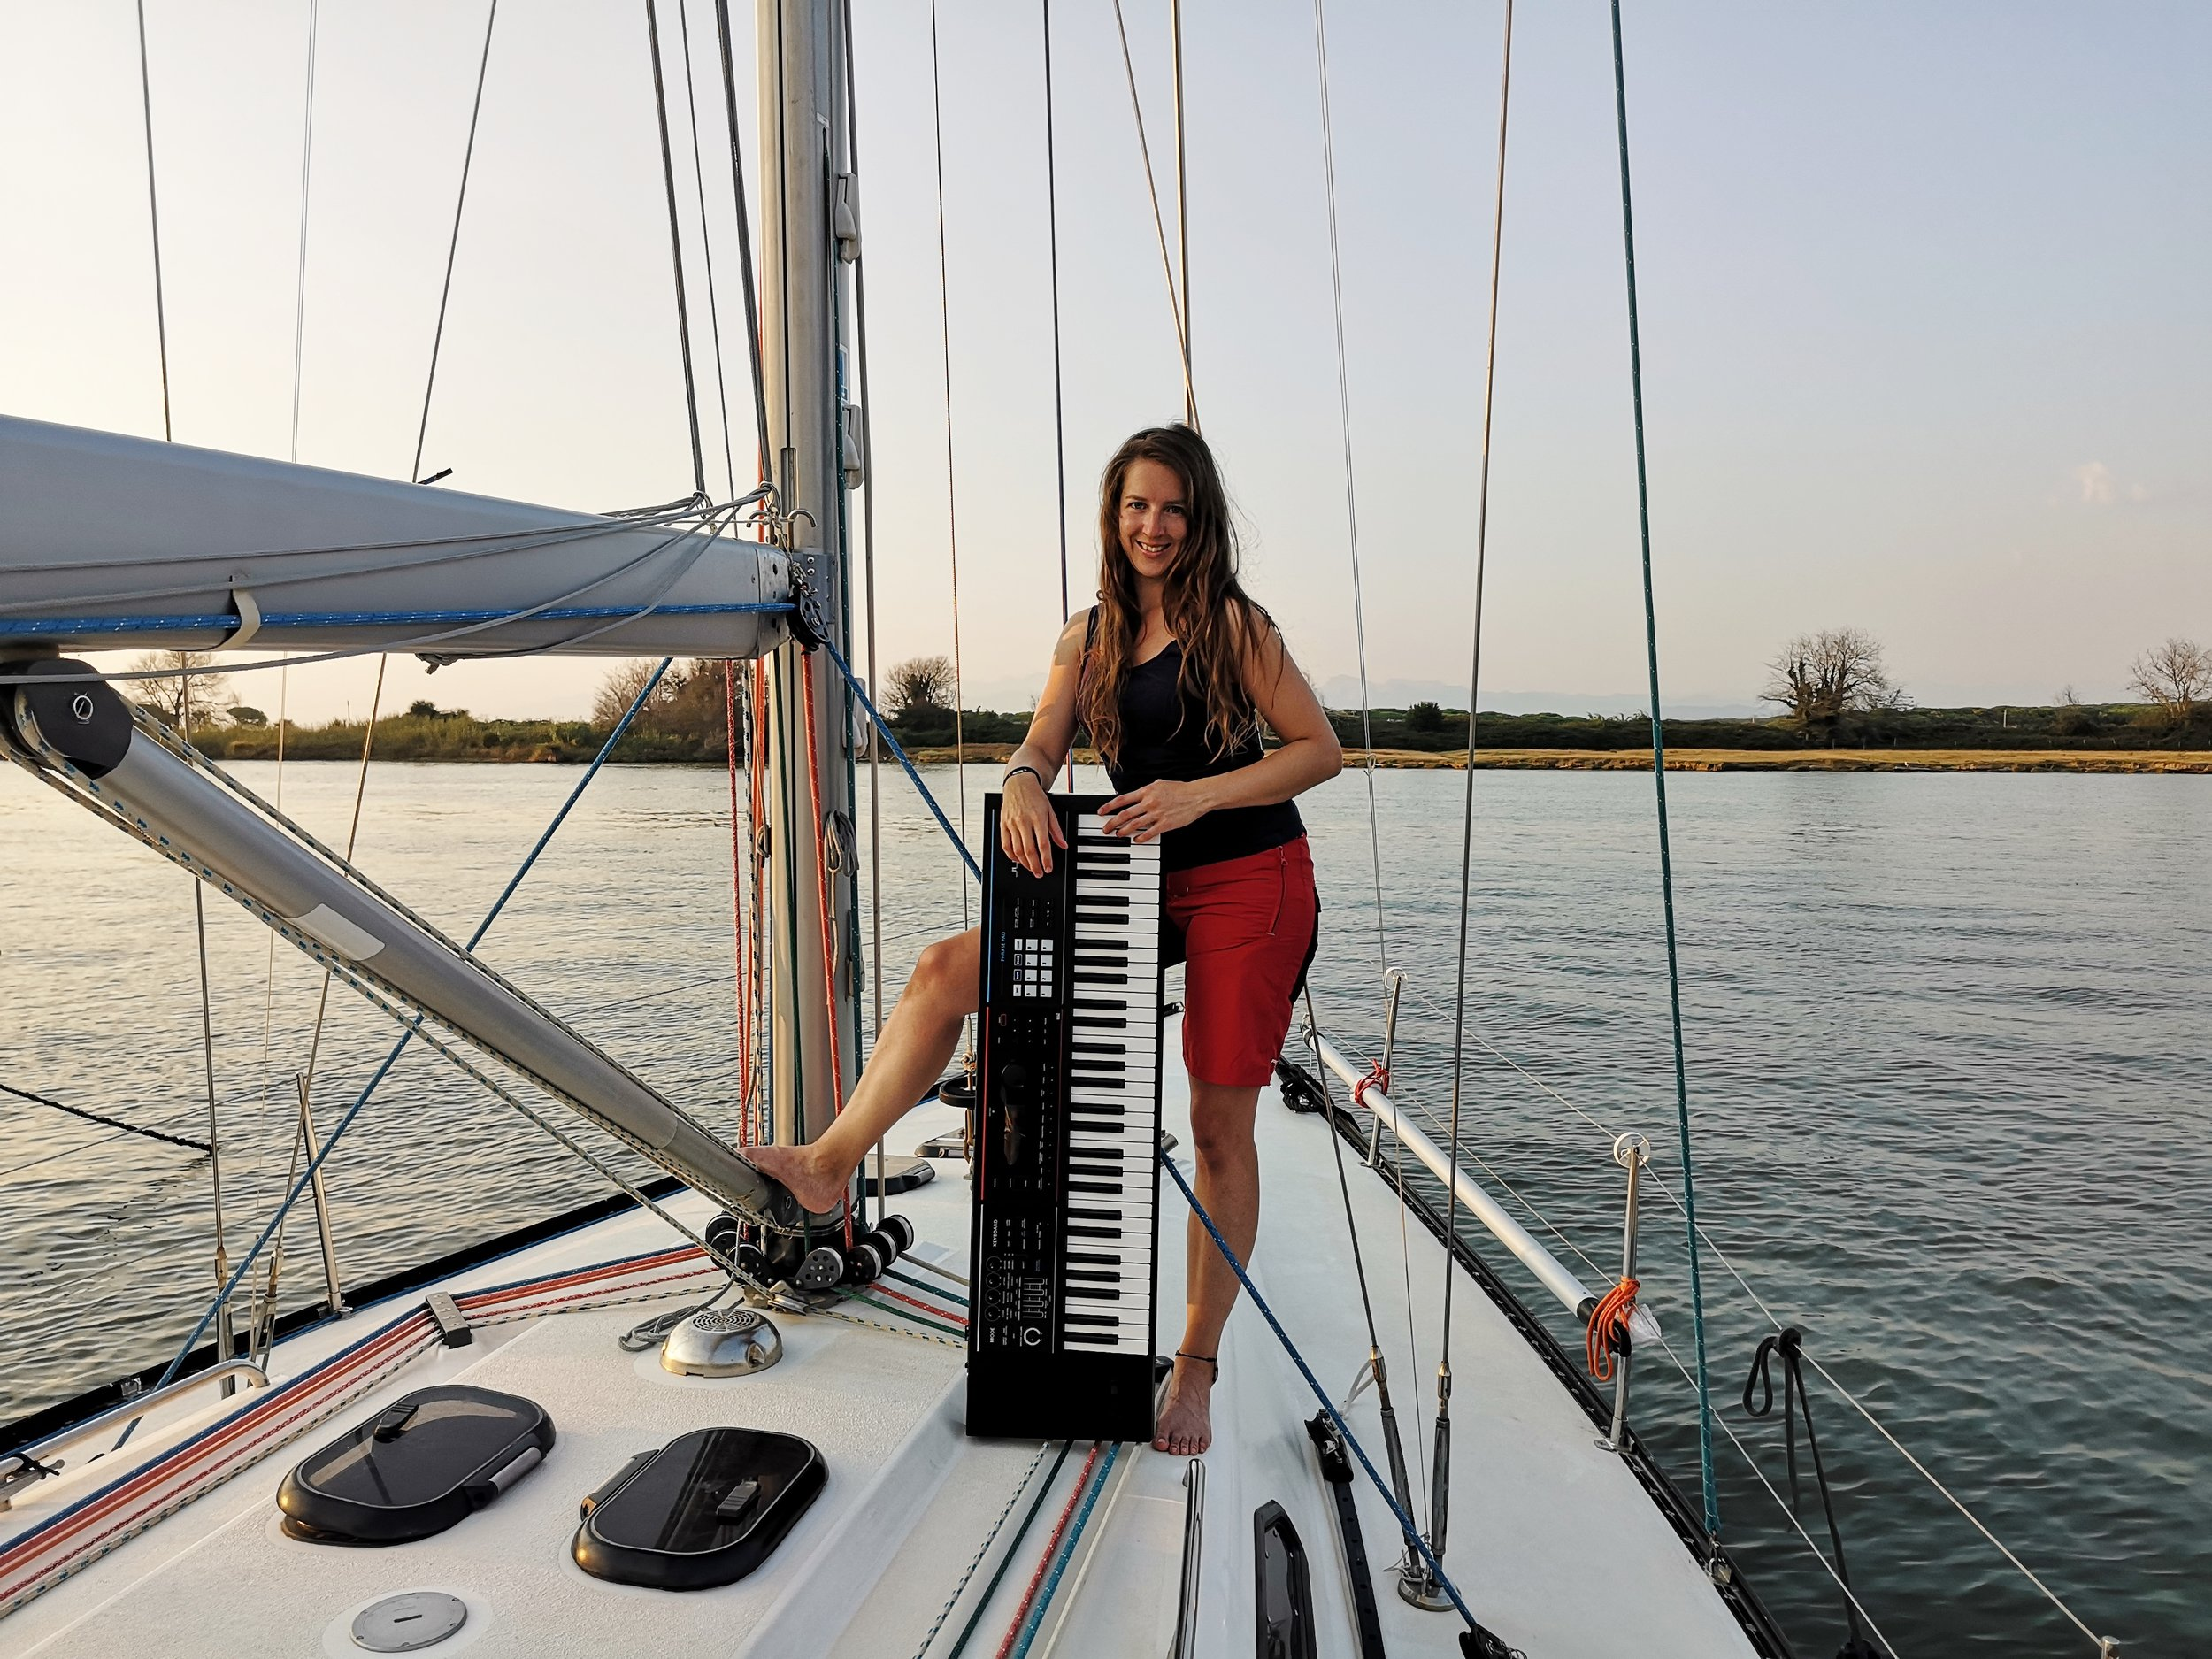 """Headed to Italy soon where the boat is waiting for the first passage to Corsica. I attached a picture of our first photo shoot on board :-)"" You can follow Bernadette and her journey on  sailingfoxes.com  &  bernifoxmusic.com  and even  watch Bernadette on YouTube"